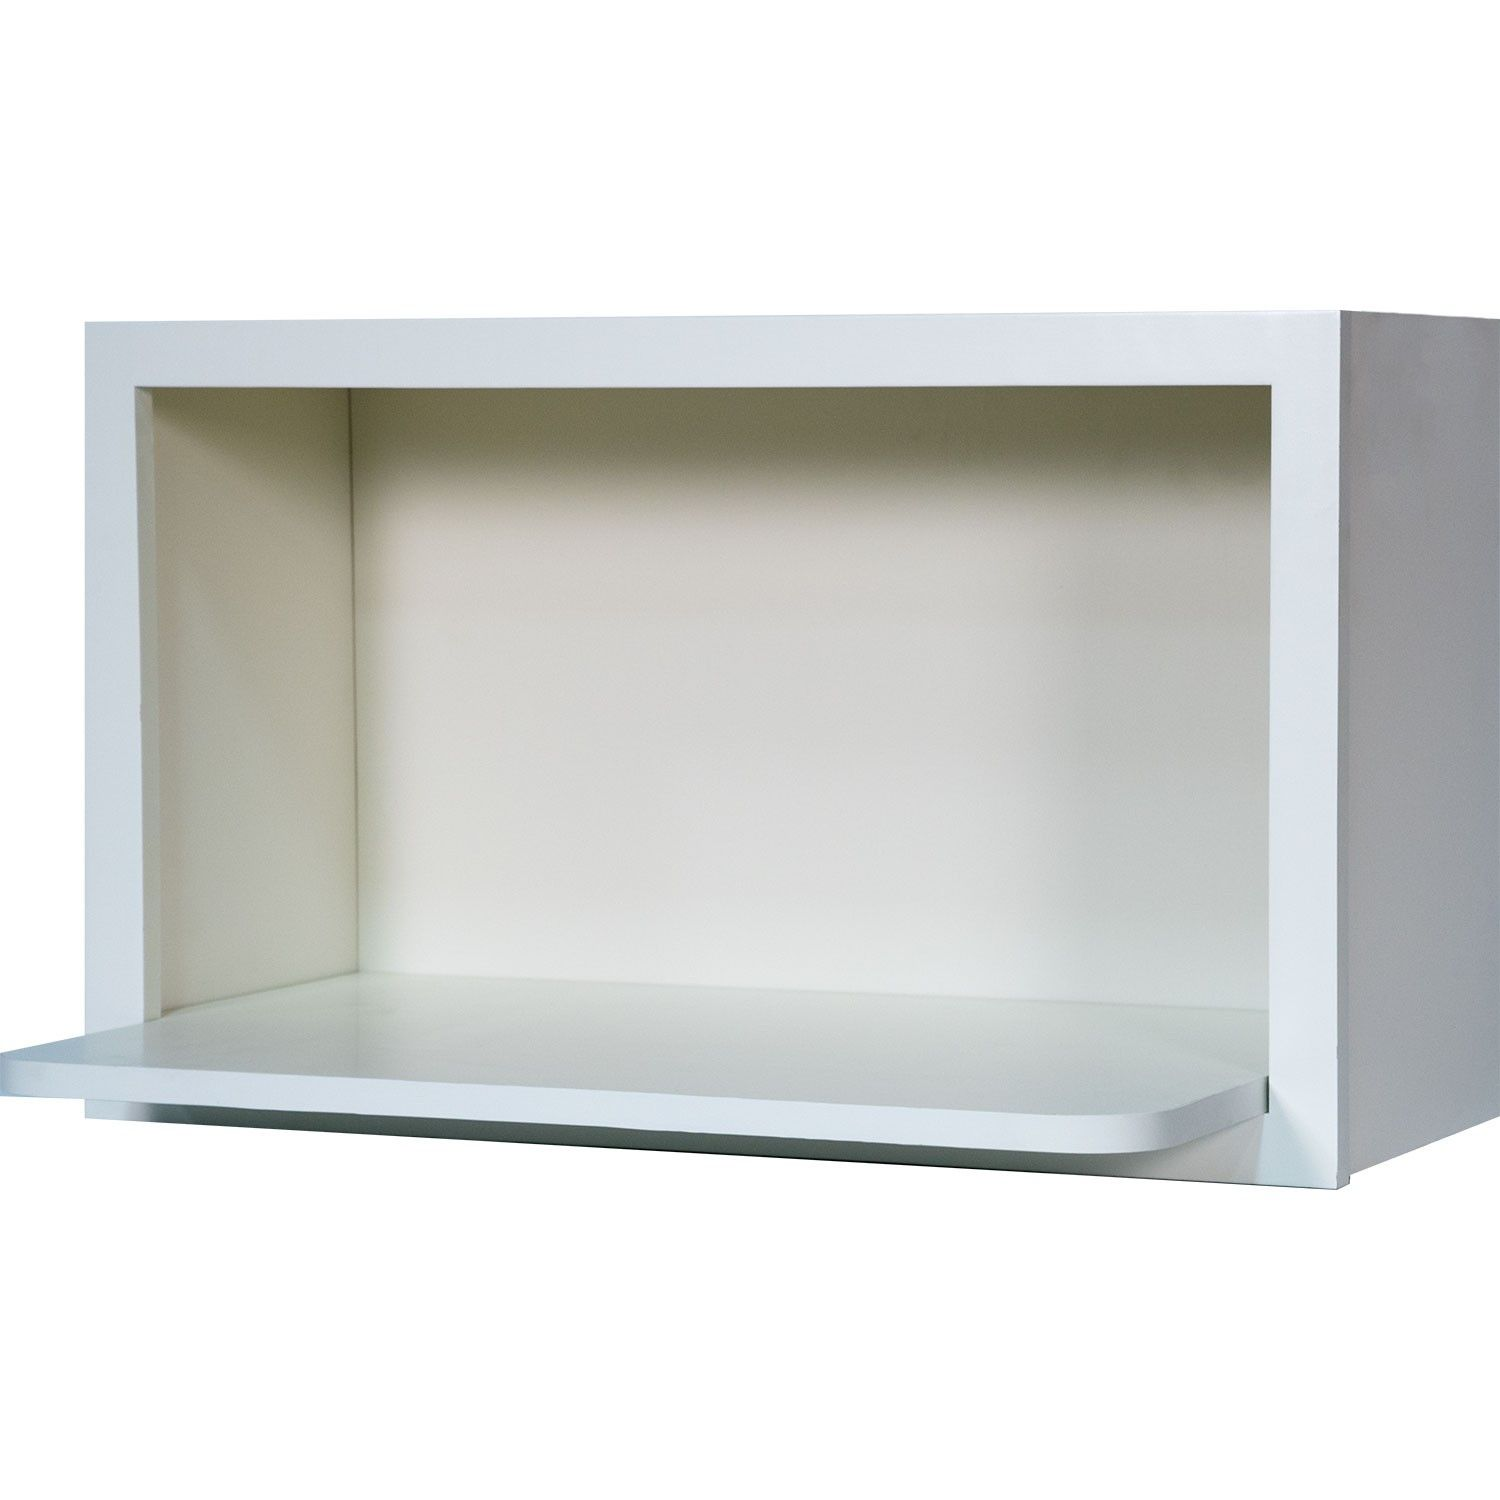 30 inch microwave shelf wall cabinet in shaker white 30 for White kitchen wall cabinets